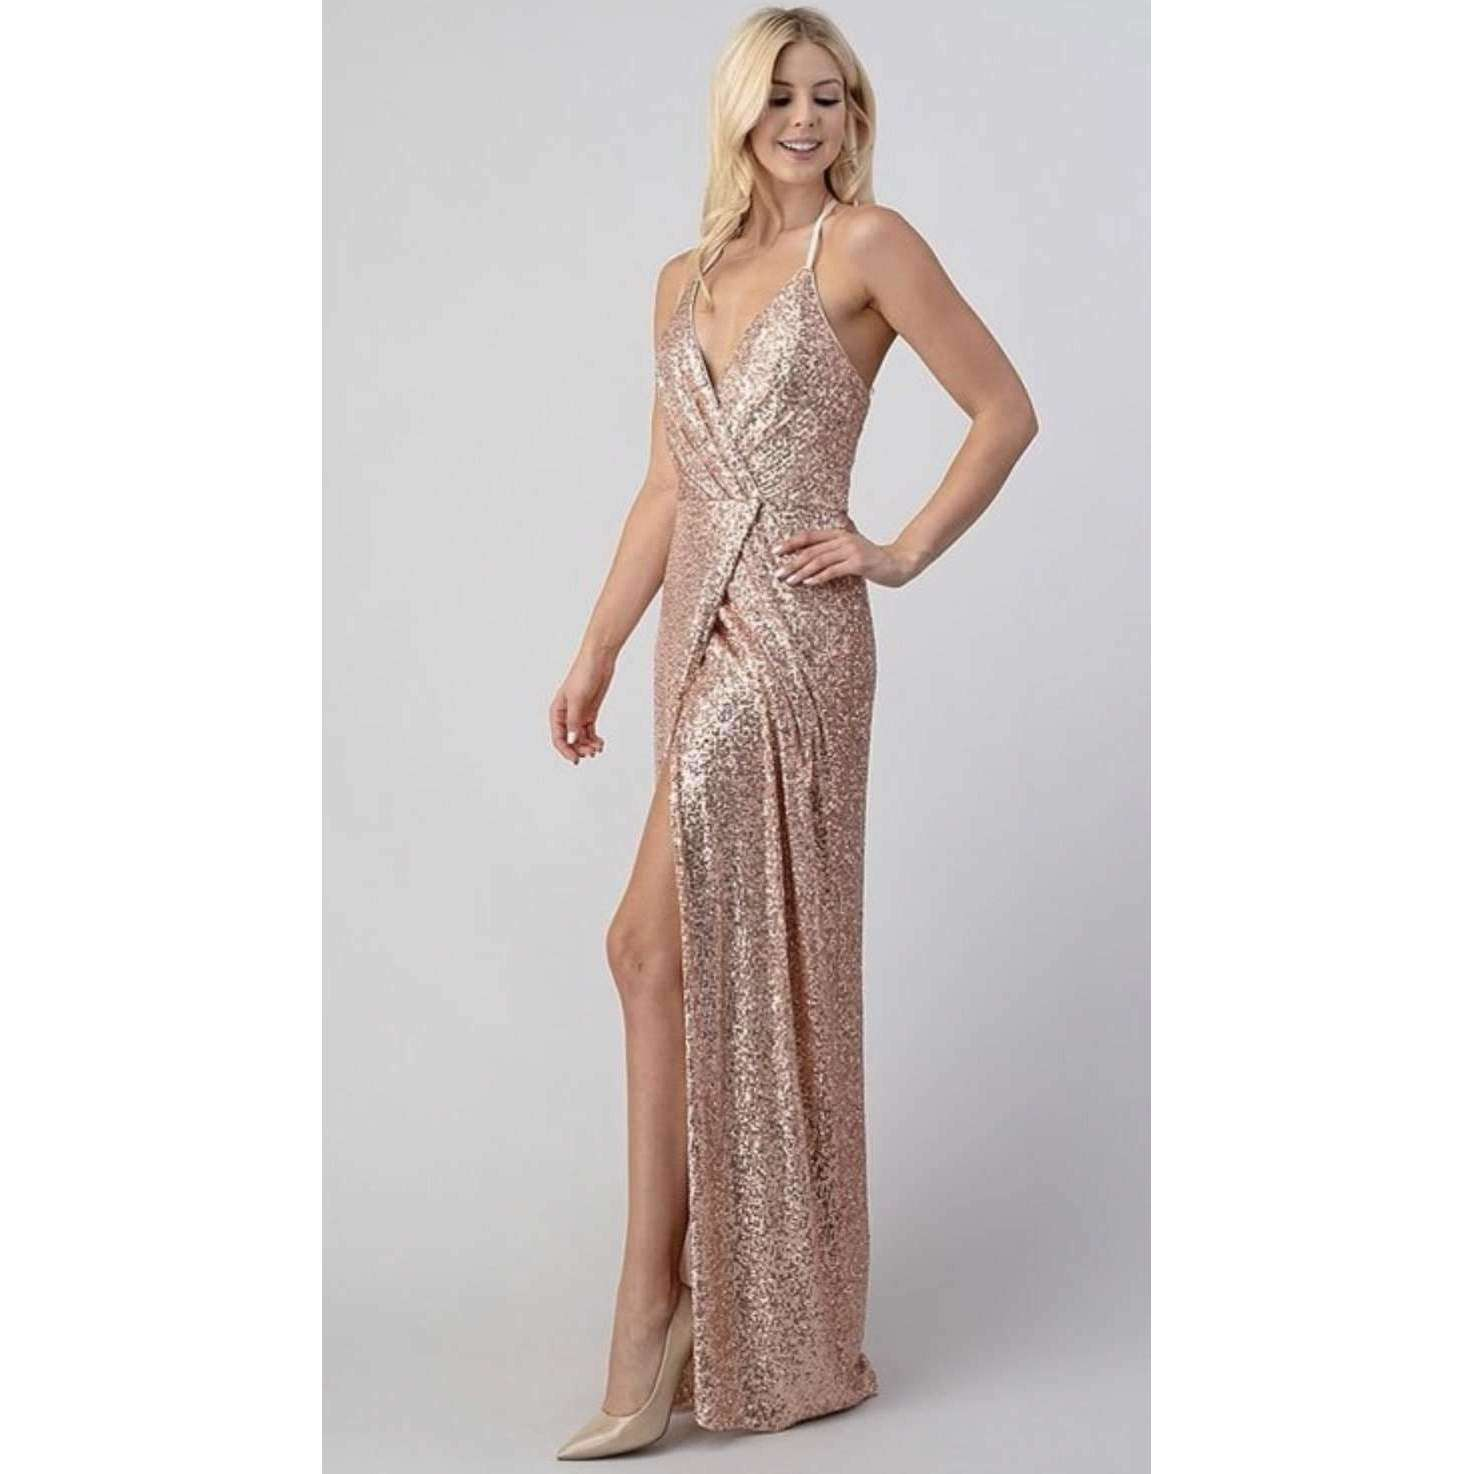 Rose Gold Sequin Dress For Parties and Events Online Dress Boutique